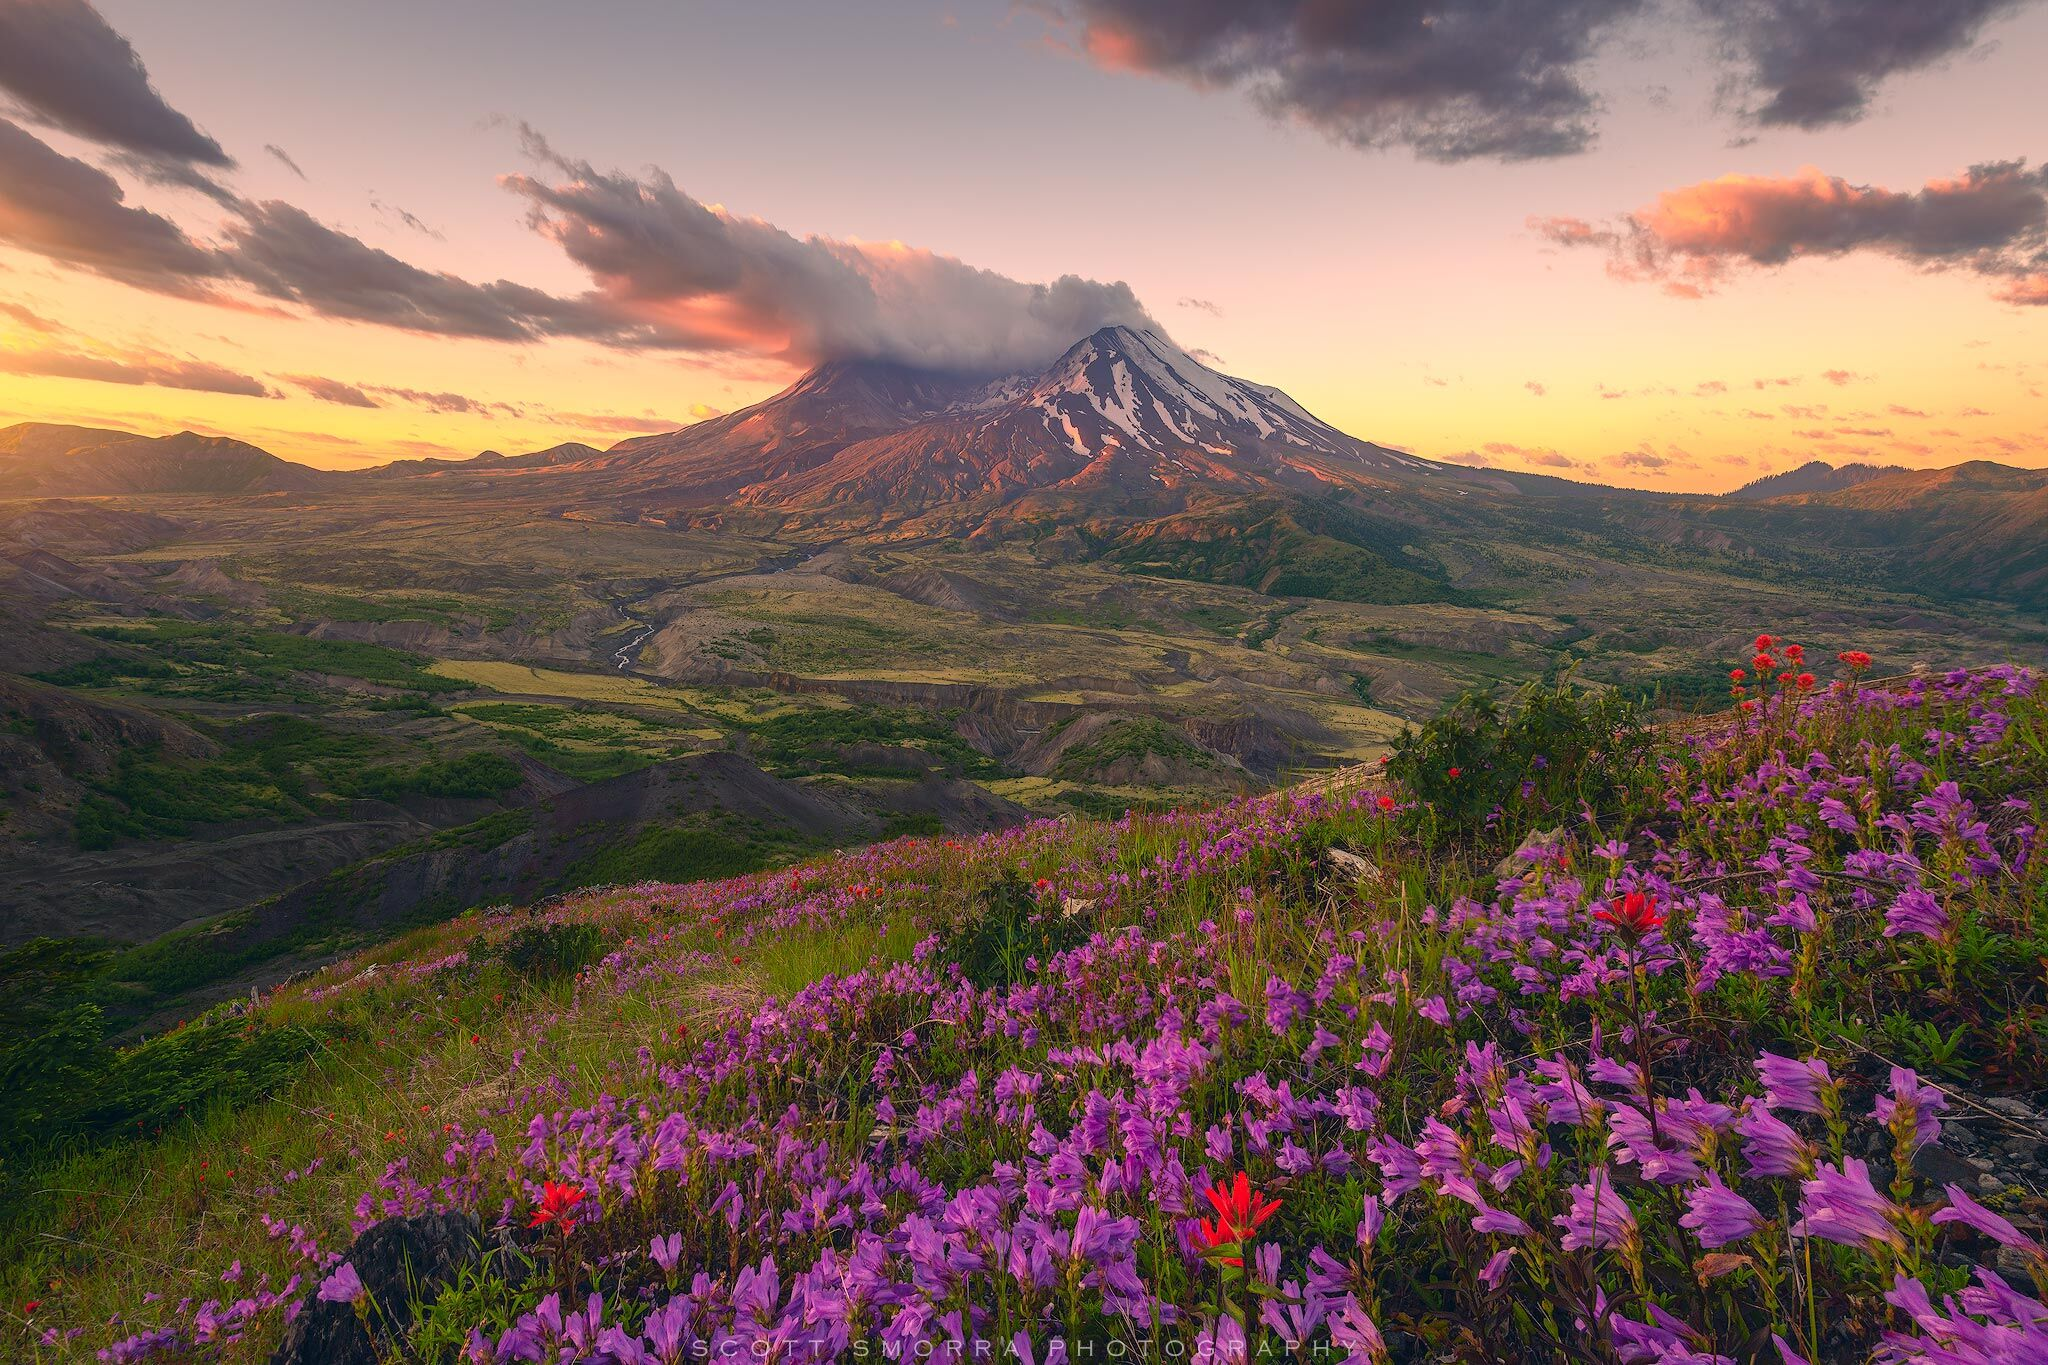 Fine Art Limited Edition of 100 - Sunrise alpenglow and peak summer wildflowers at Mount St. Helens National Volcanic Monument...